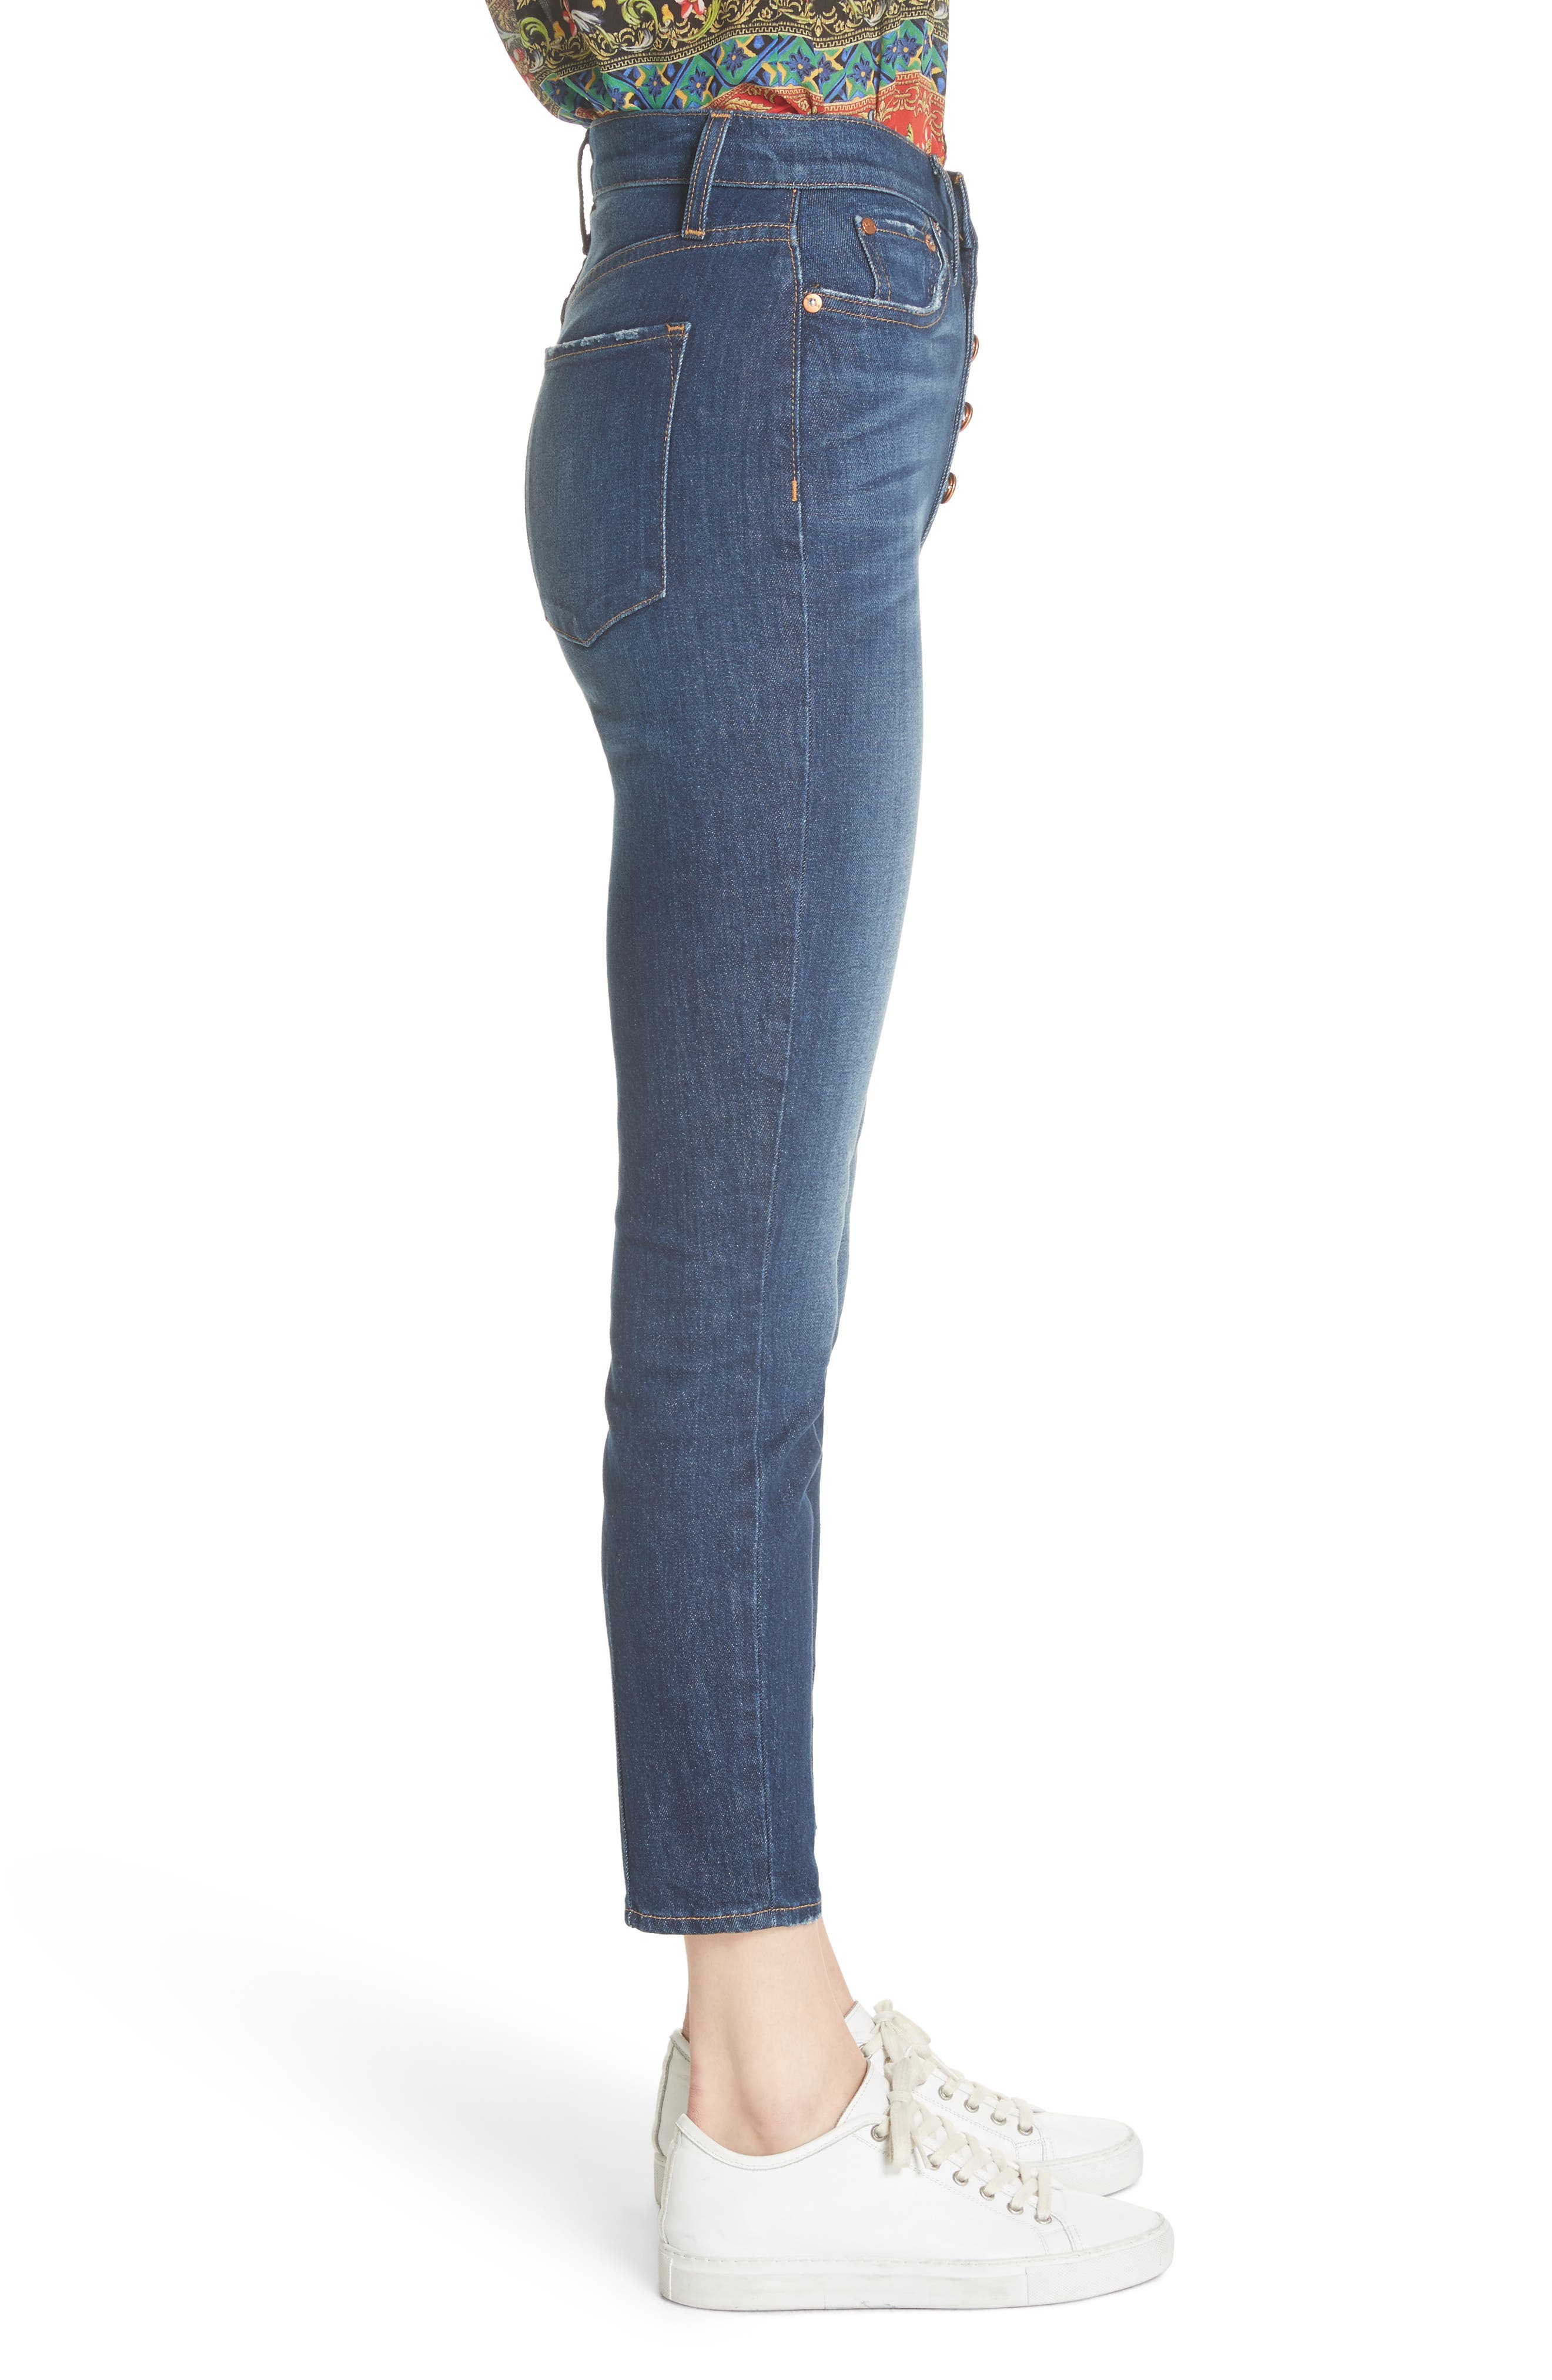 AO.LA Good High Waist Exposed Button Skinny Jeans,                             Alternate thumbnail 3, color,                             472